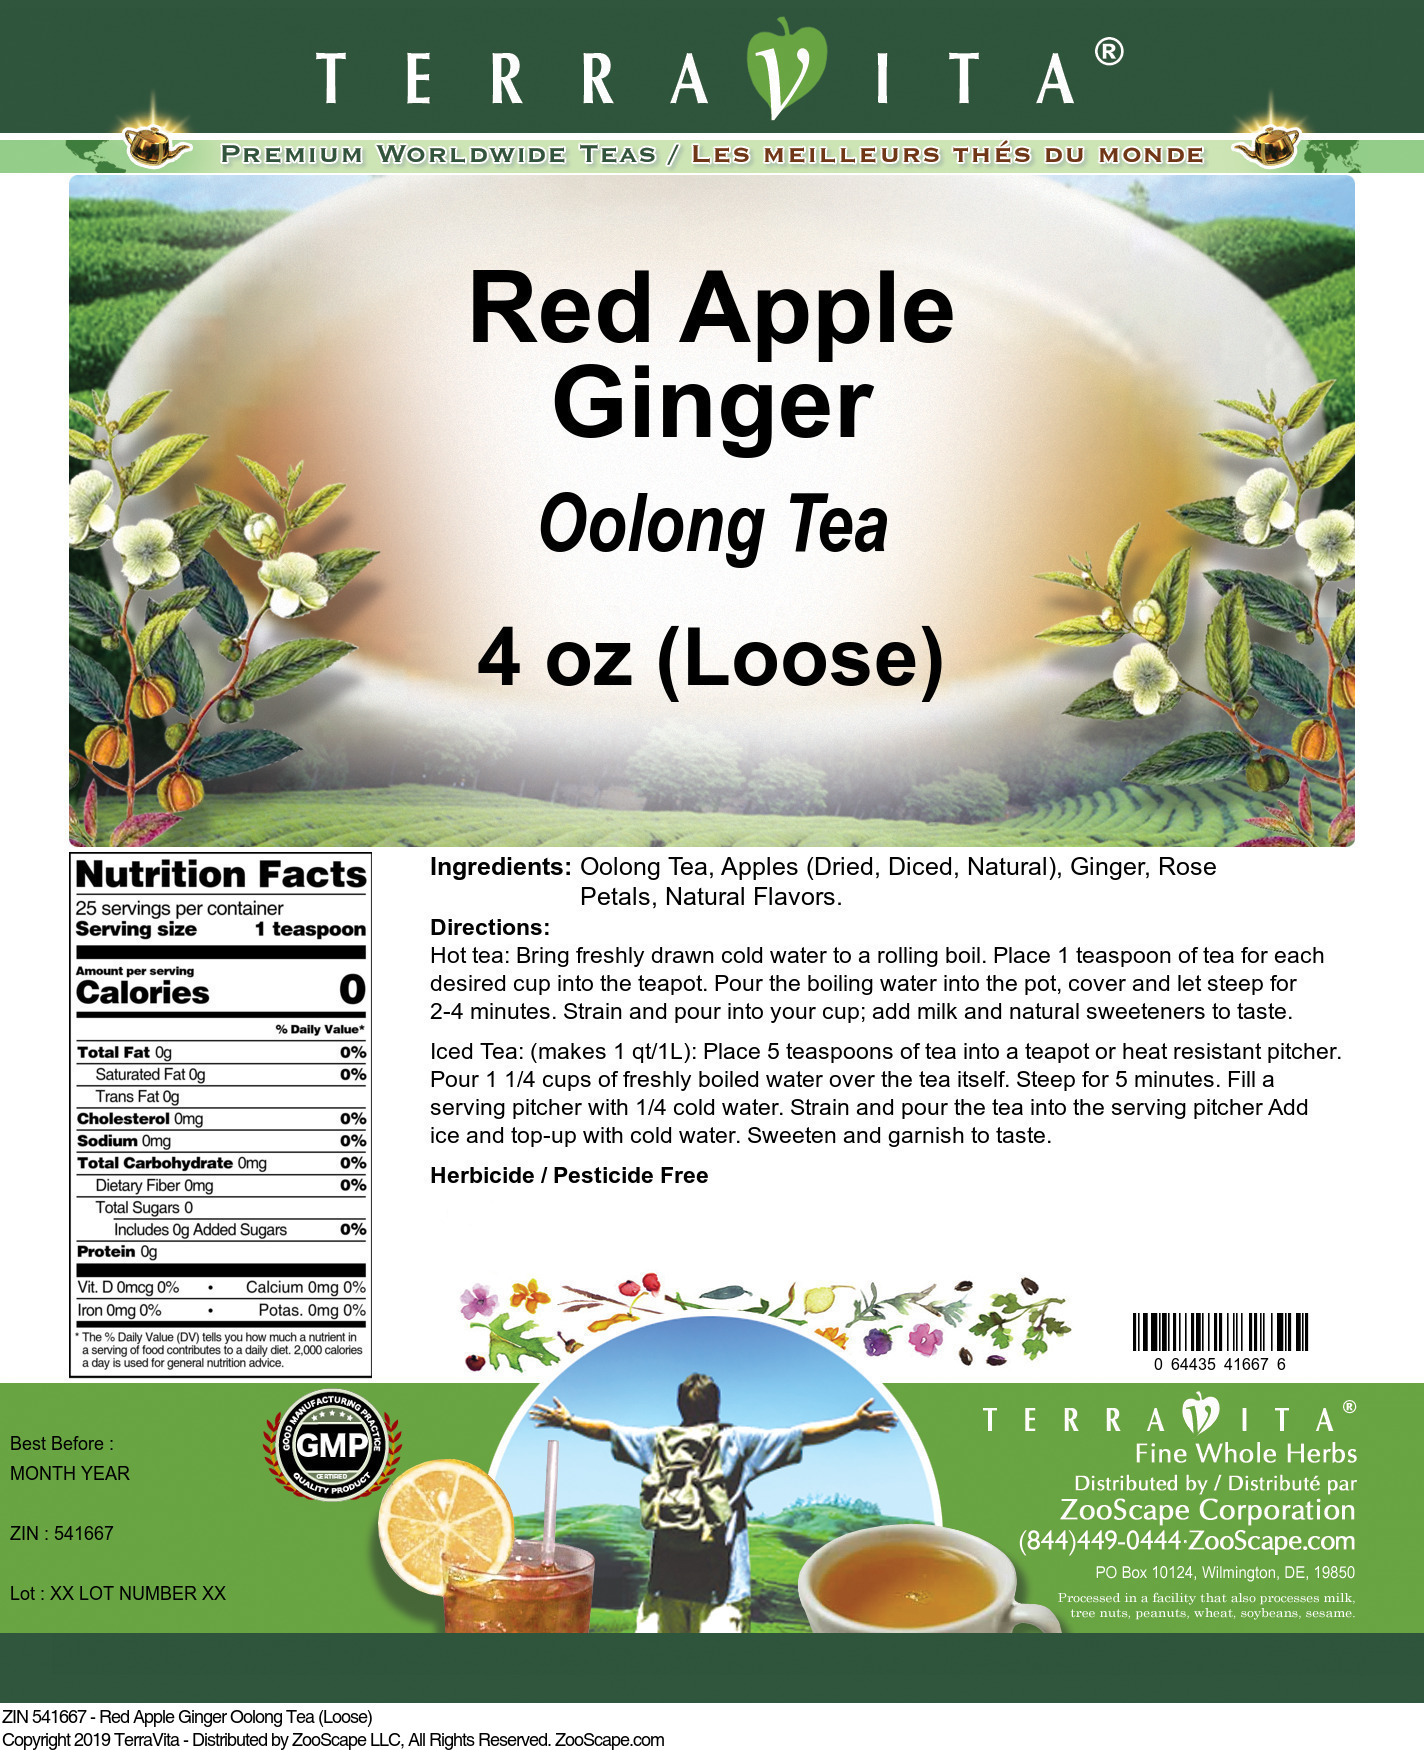 Red Apple Ginger Oolong Tea (Loose)